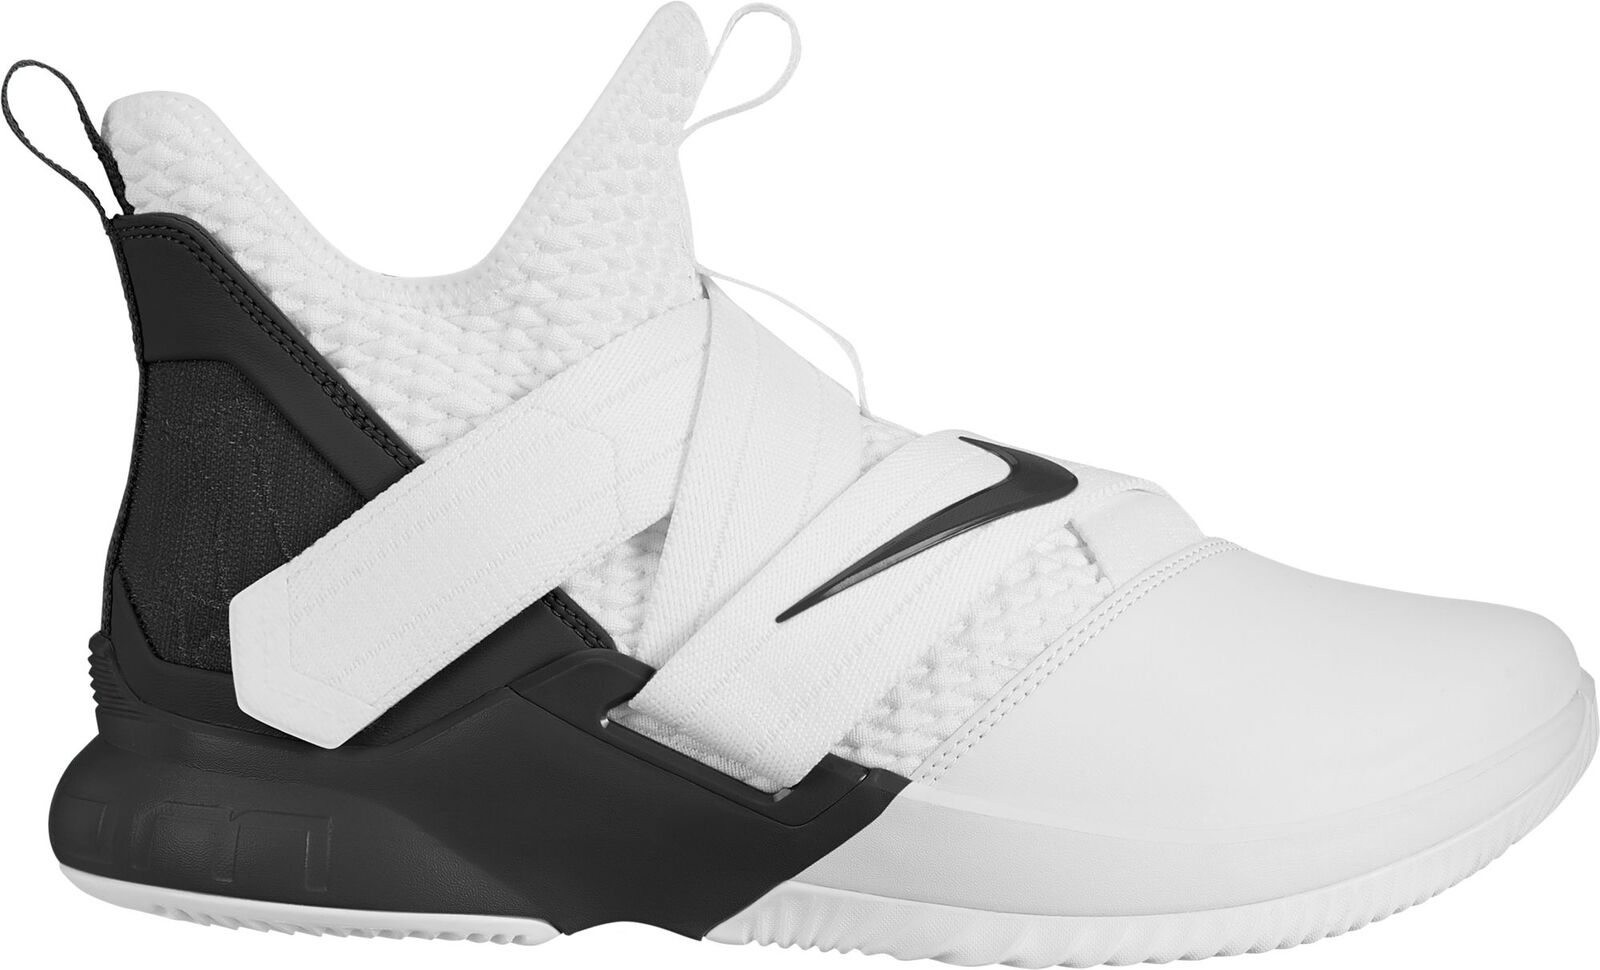 Nike Lebron Soldier 12 XII TB White/Black Oreo SVSM 2018 All New Mens Basketball